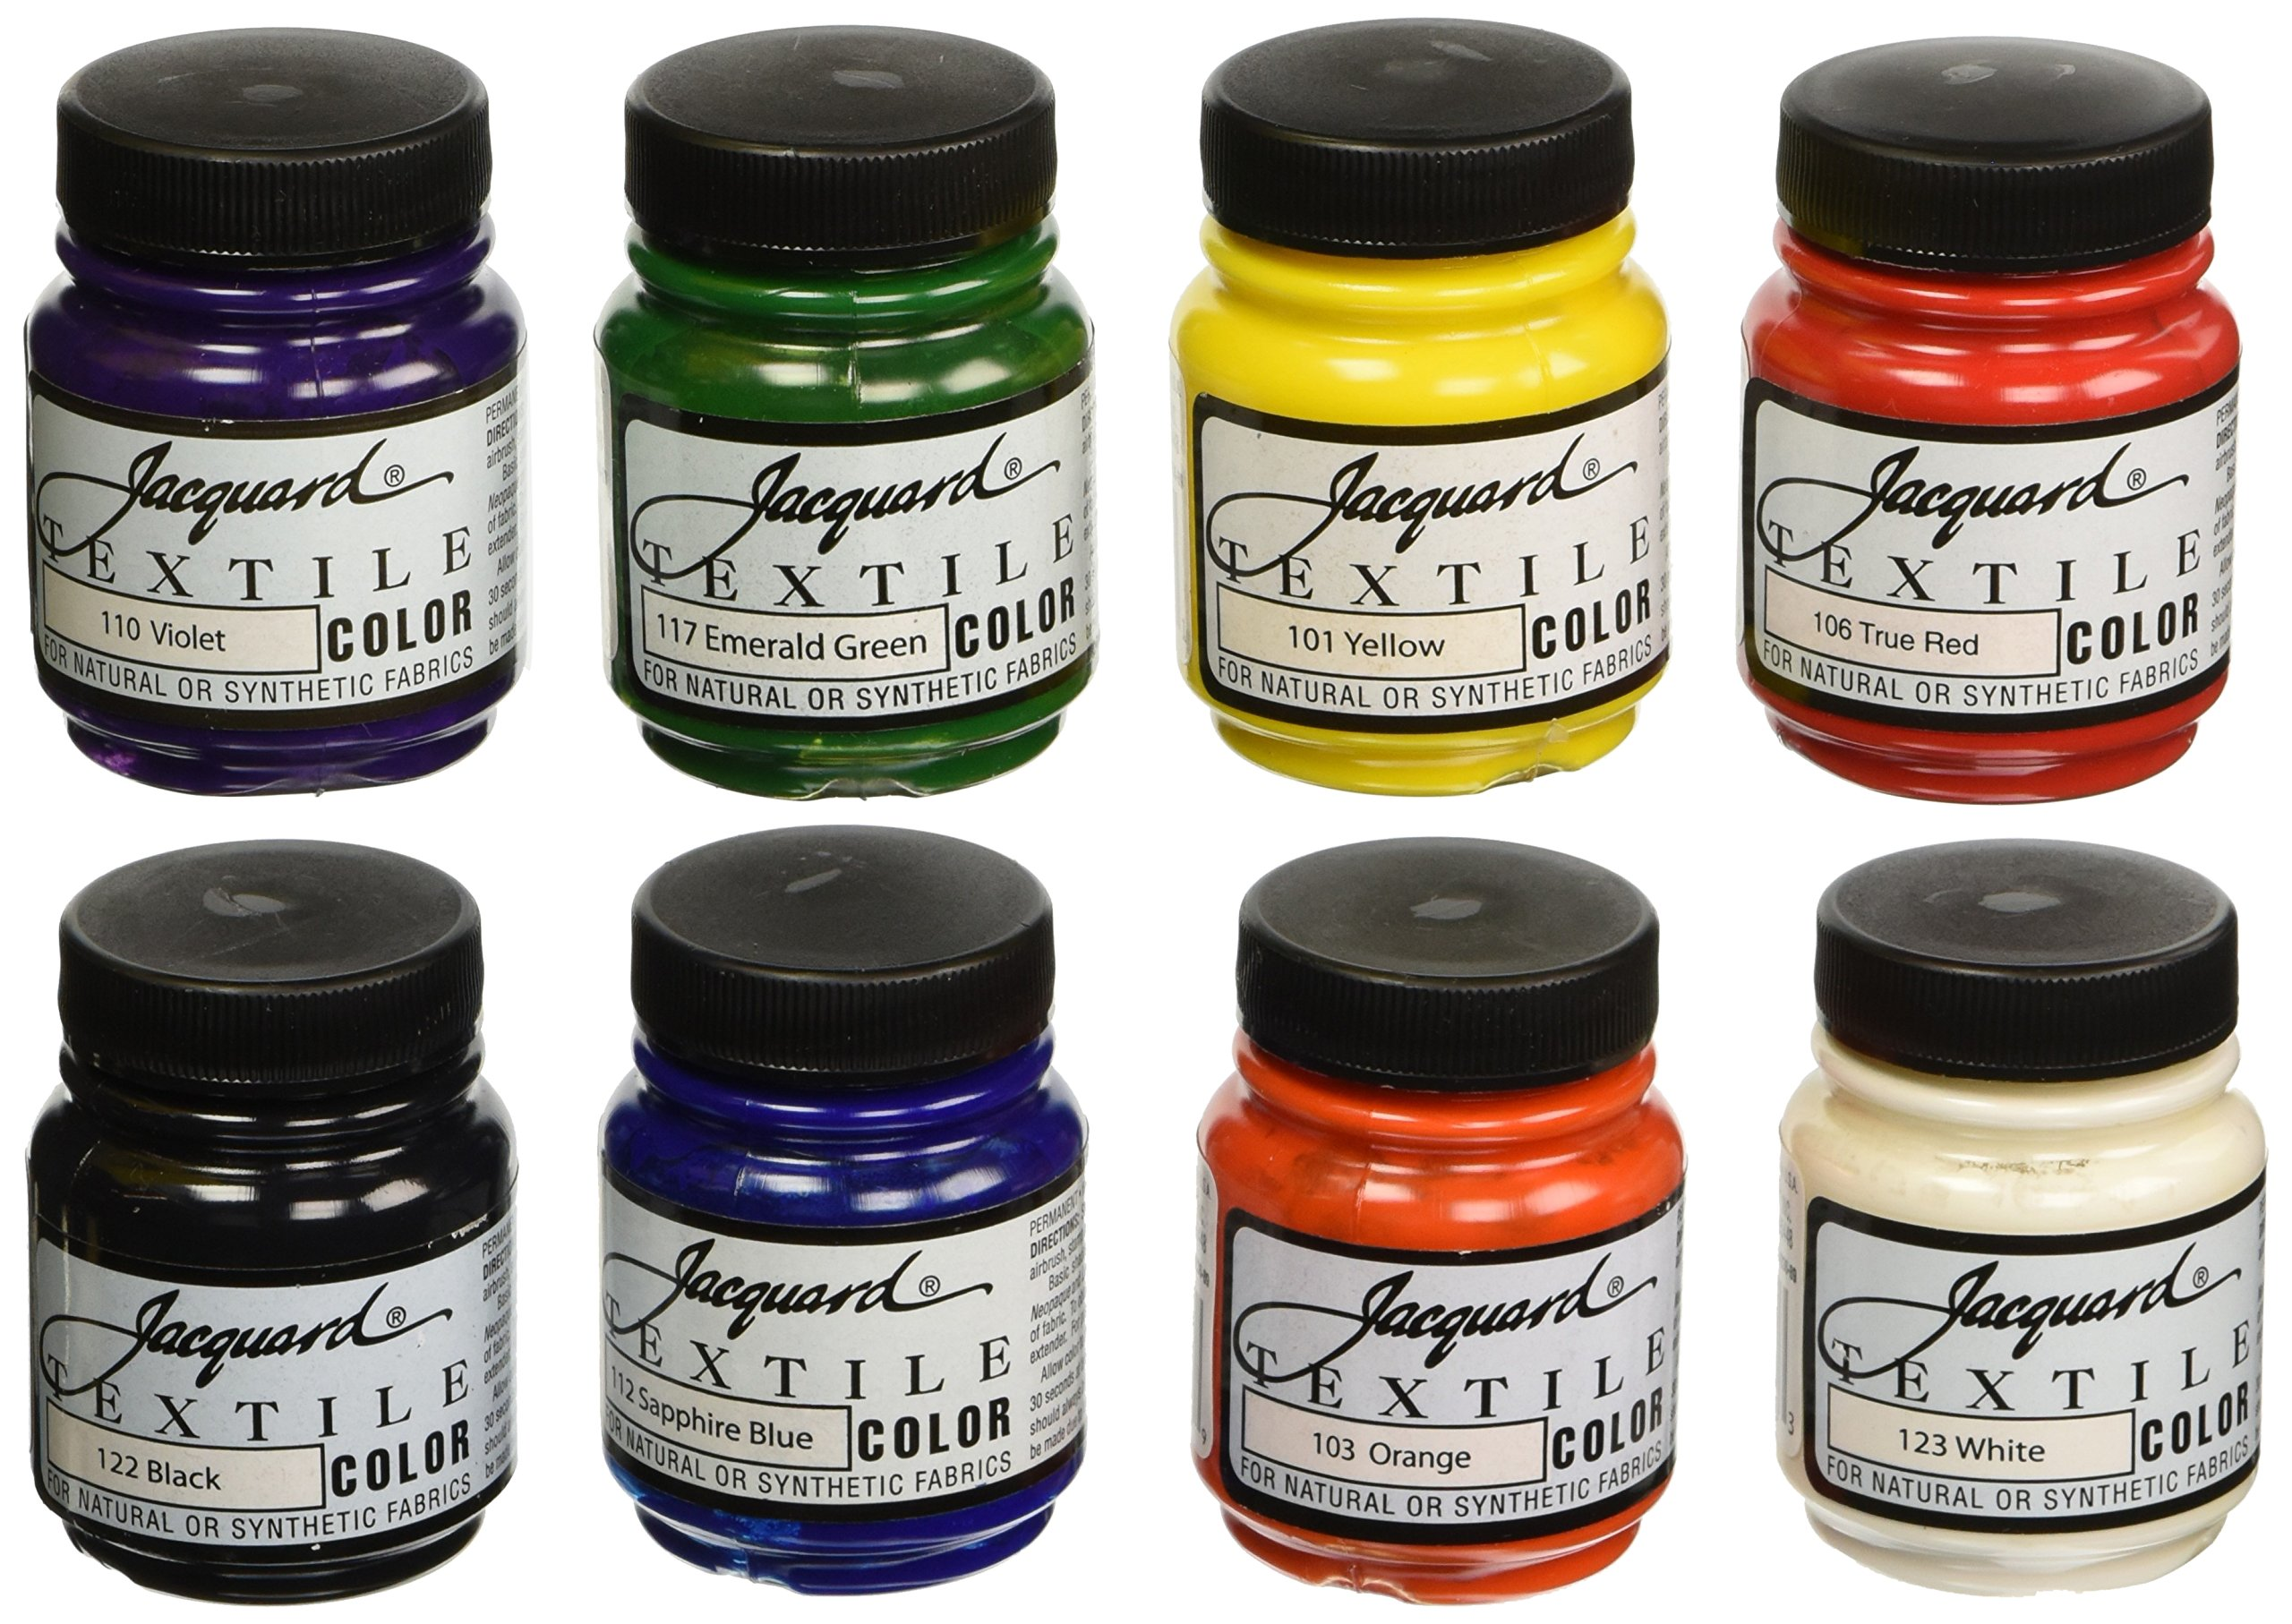 Jacquard Non-Toxic Professional Quality Artists Textile Paint Set, 2.25 oz Jar, Assorted Color, Set of 8 - 458246 by Jacquard